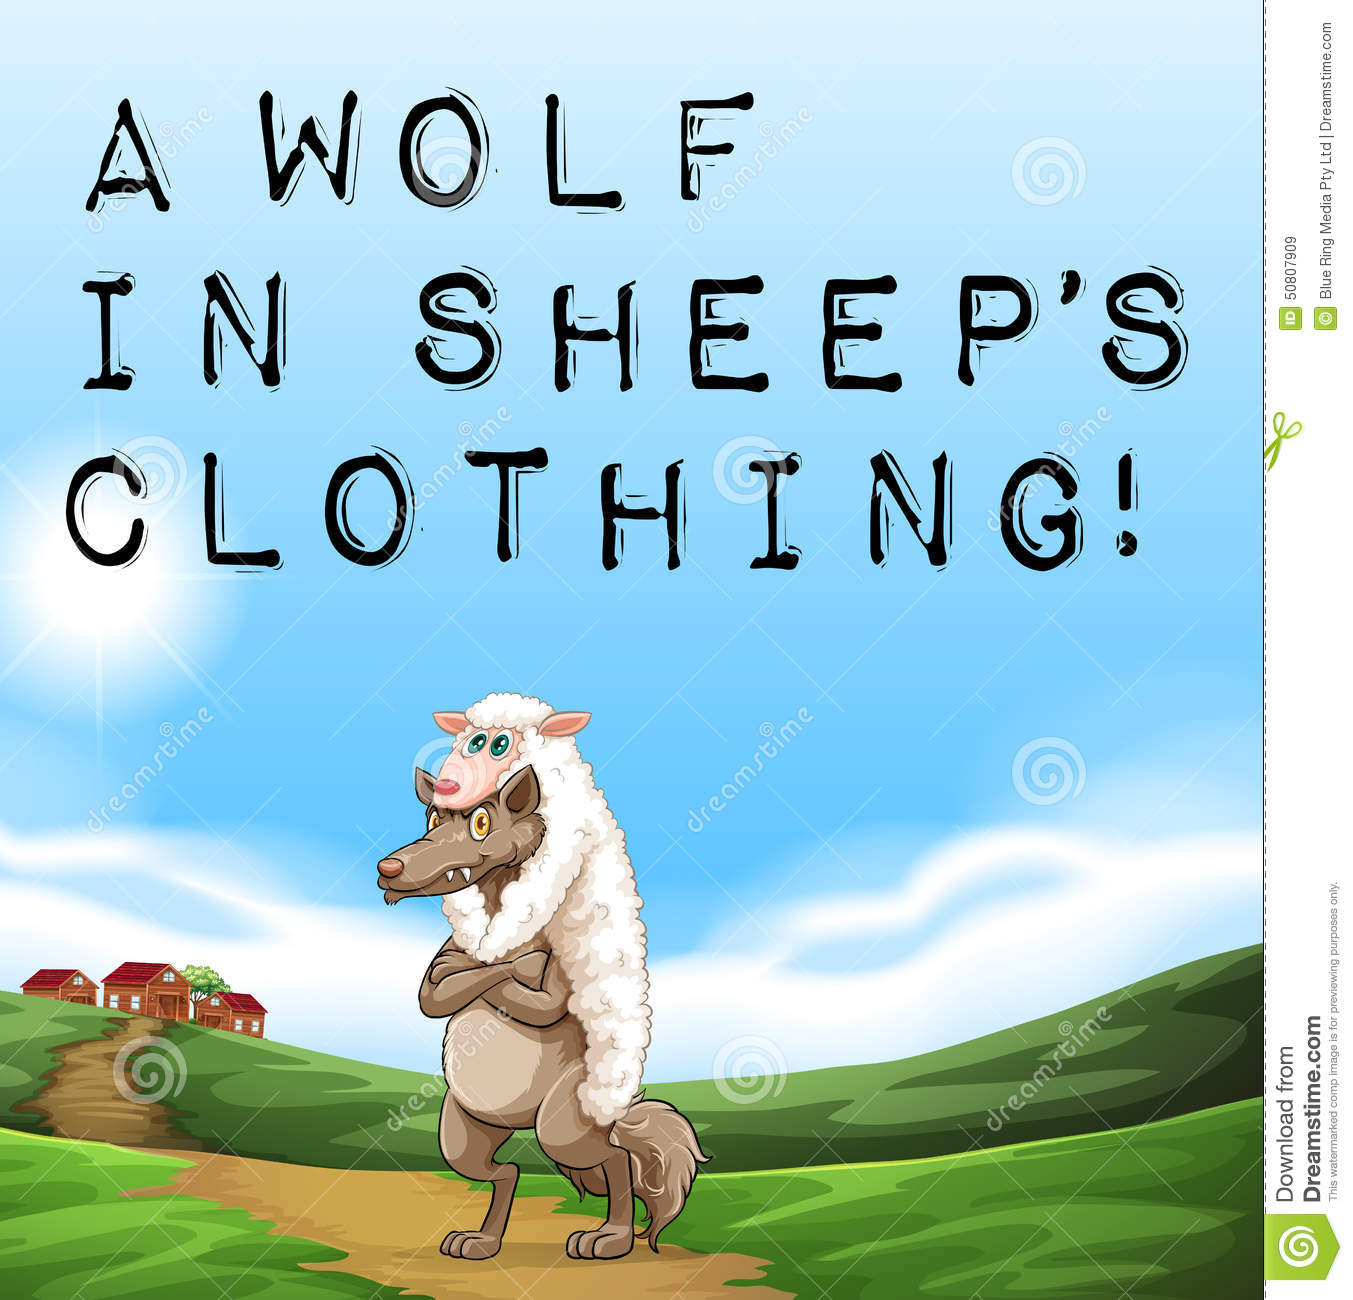 Скачать wolf in sheep's clothing на русском.